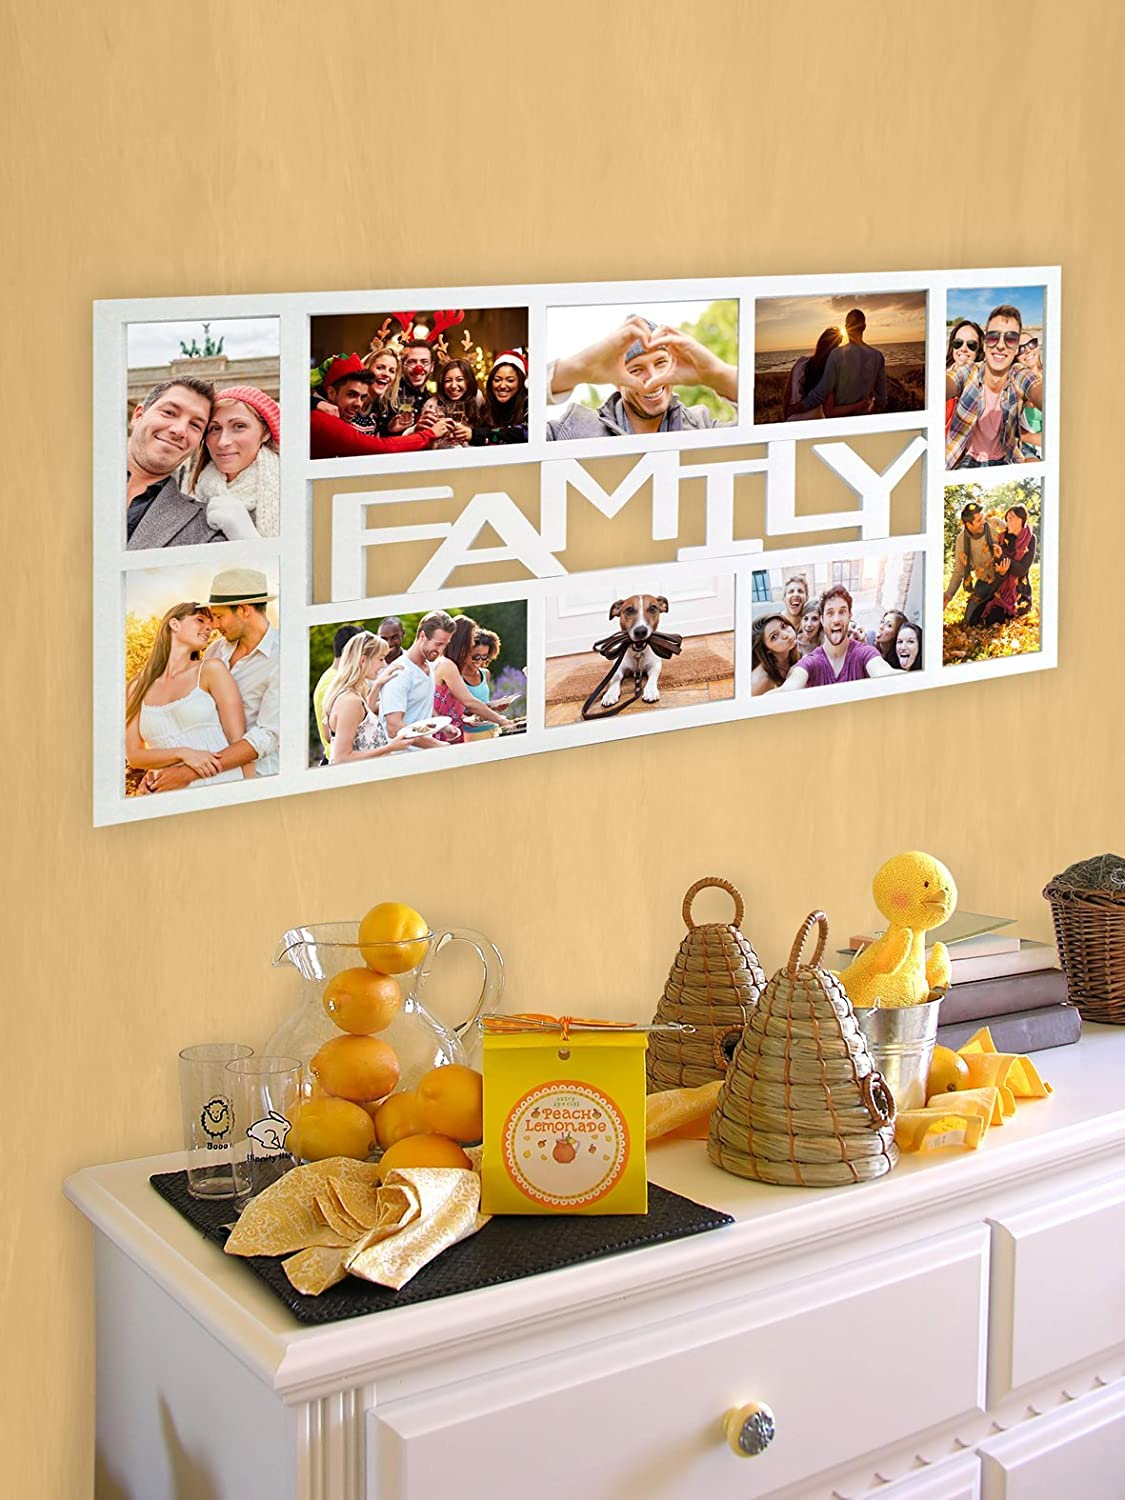 Amazon.de: Empireposter - Collage Bilderrahmen Family - Kunststoff ...